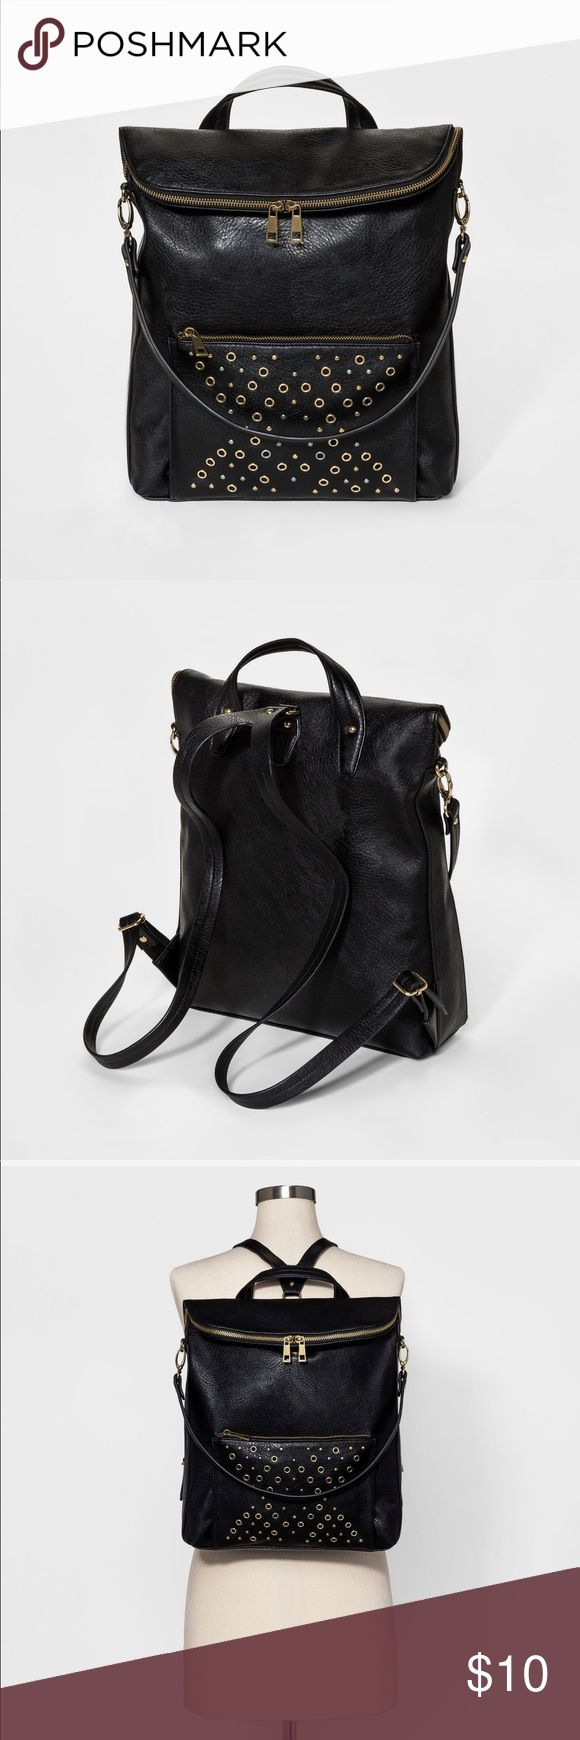 Leather Backpack Black leather chic backpack-handbag, can worn as a backpack and regular purse-handbag multi use DV by Dolce Vita Bags Shoulder Bags